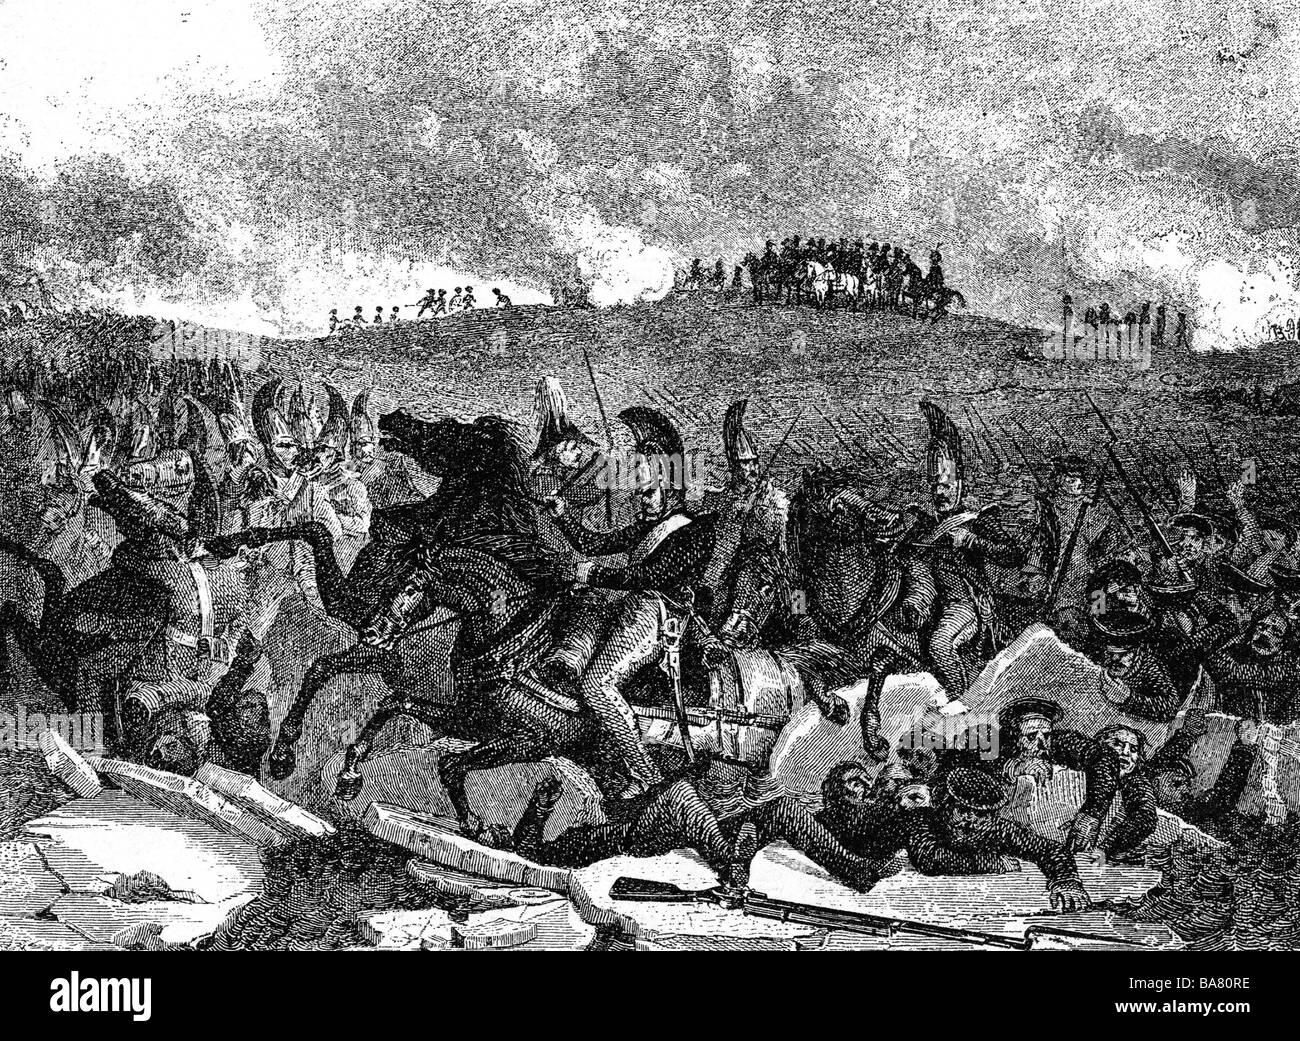 events, War of the Third Coalition 1805, Battle of Austerlitz, 2.12.1805, fleeing Russians, after contemporary copper - Stock Image